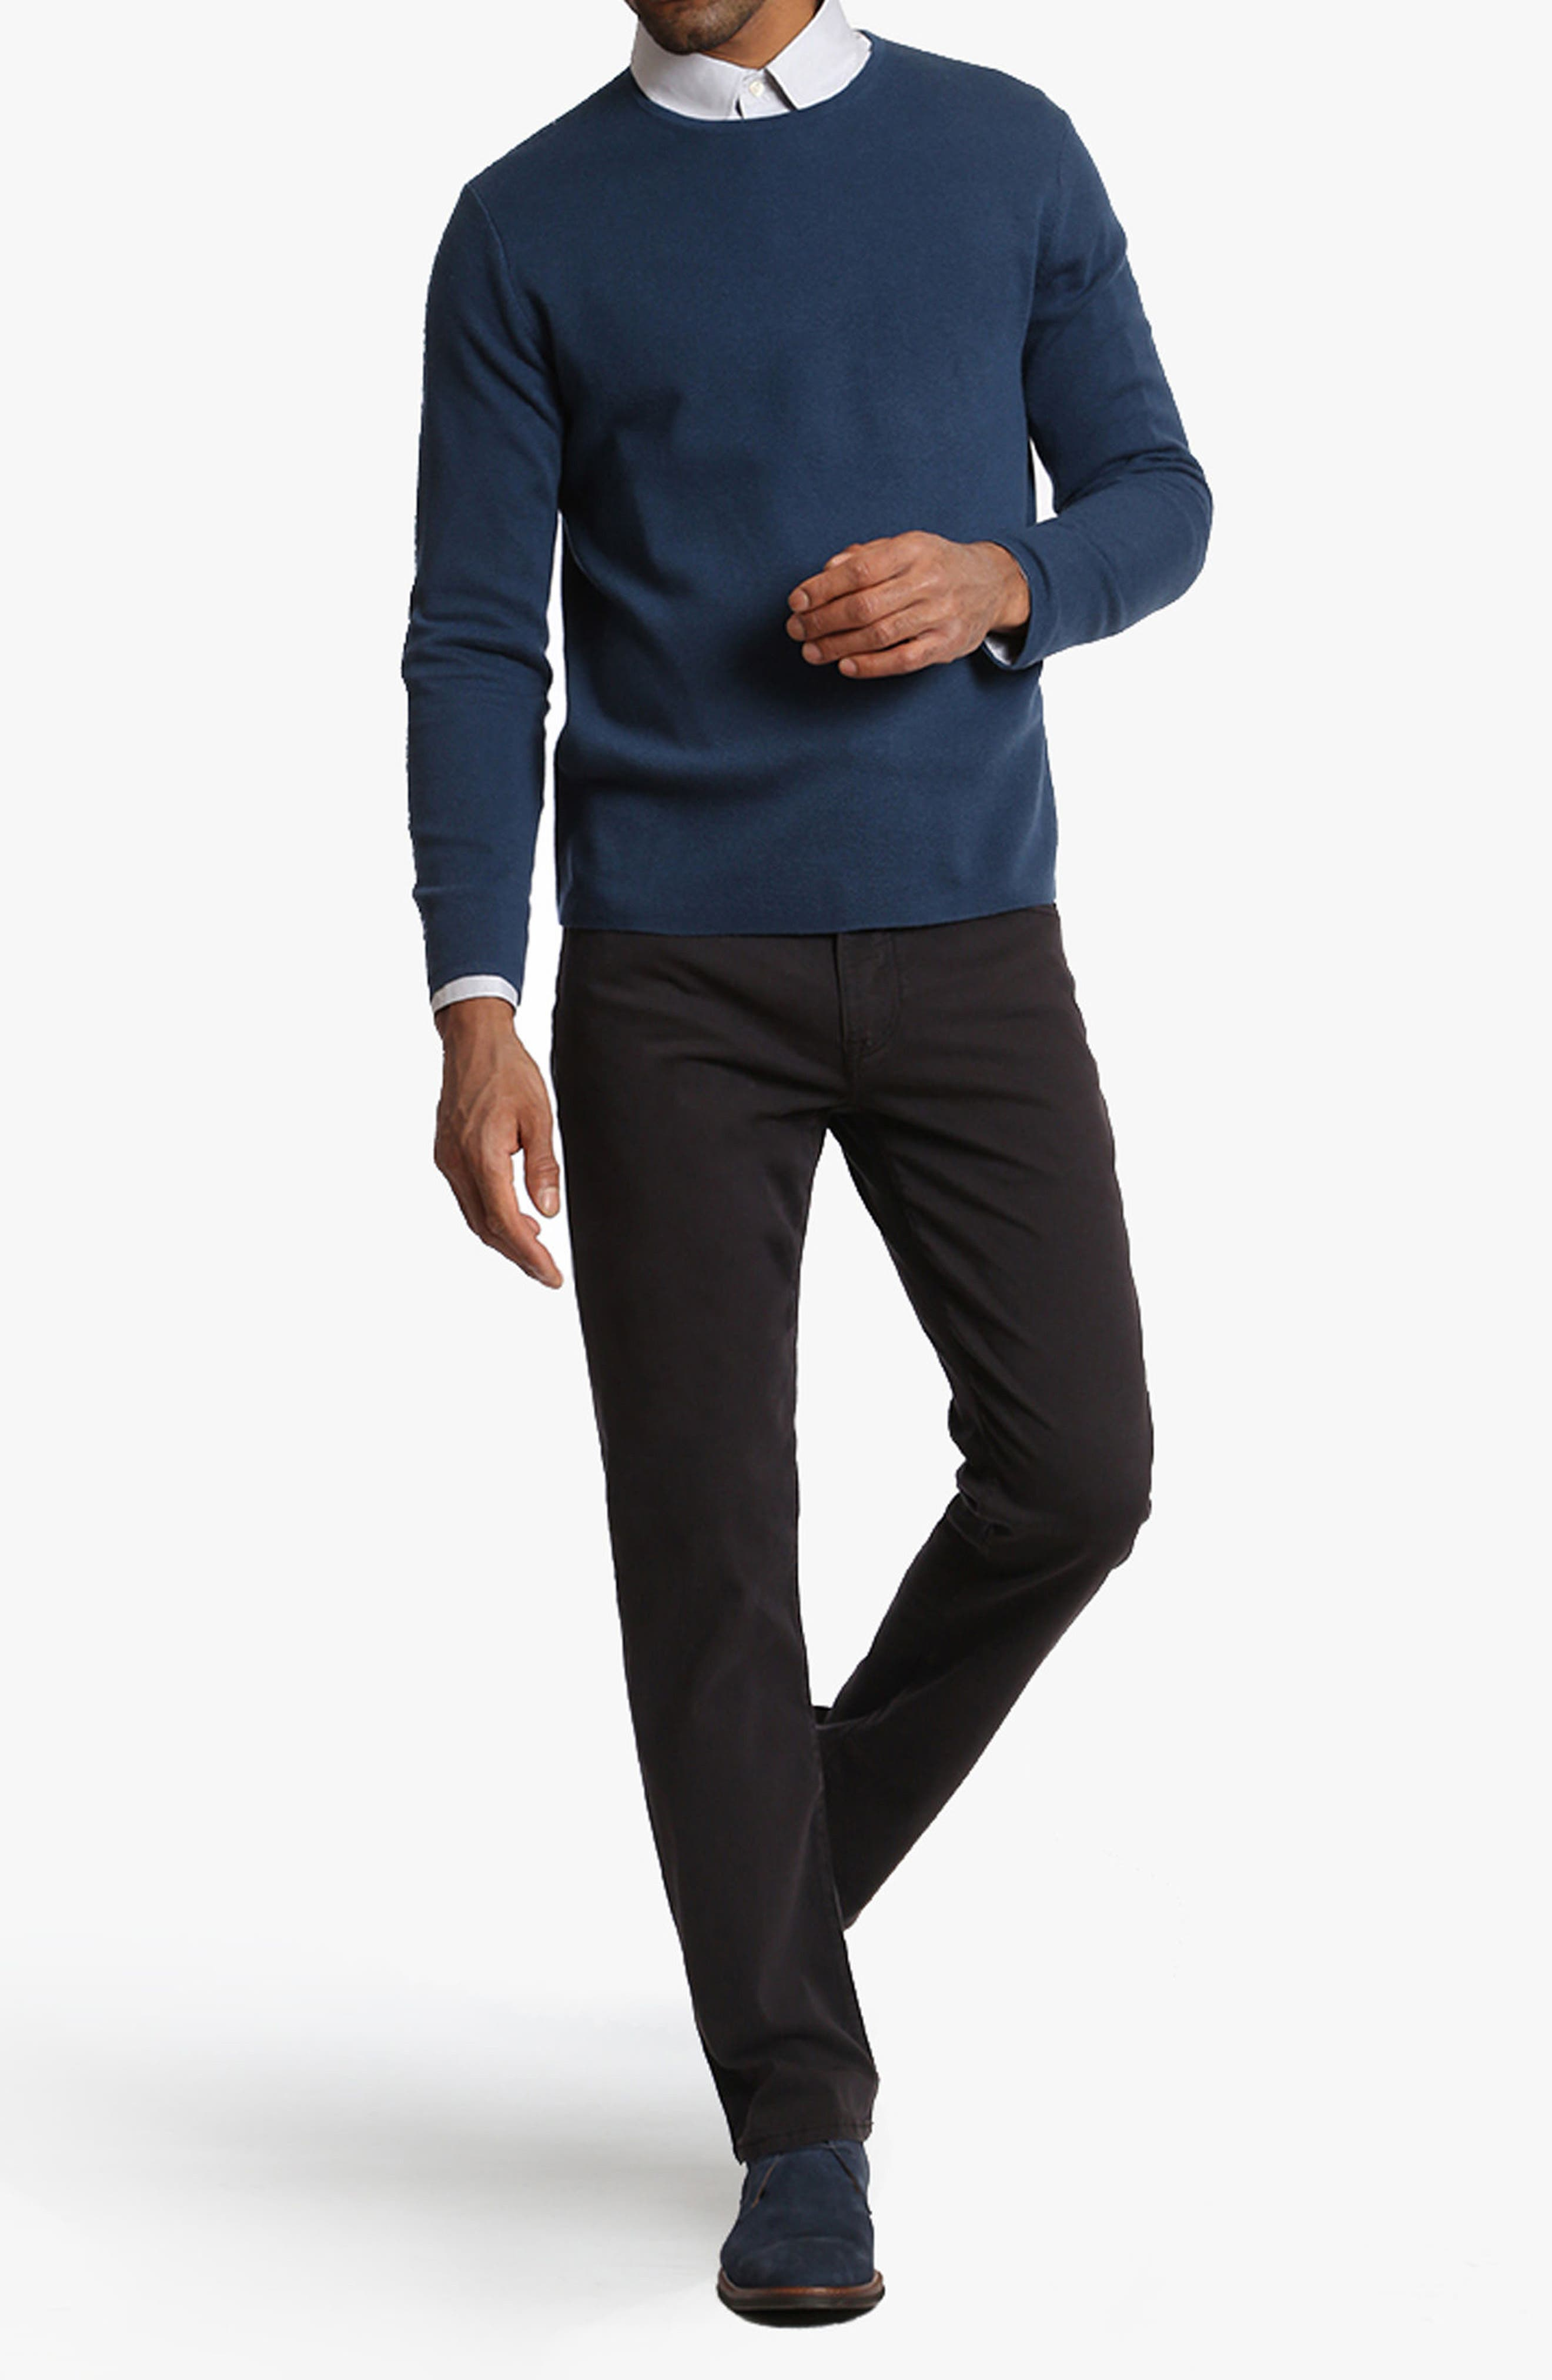 Courage Straight Leg Twill Pants,                             Alternate thumbnail 4, color,                             BLUE-GREY TWILL